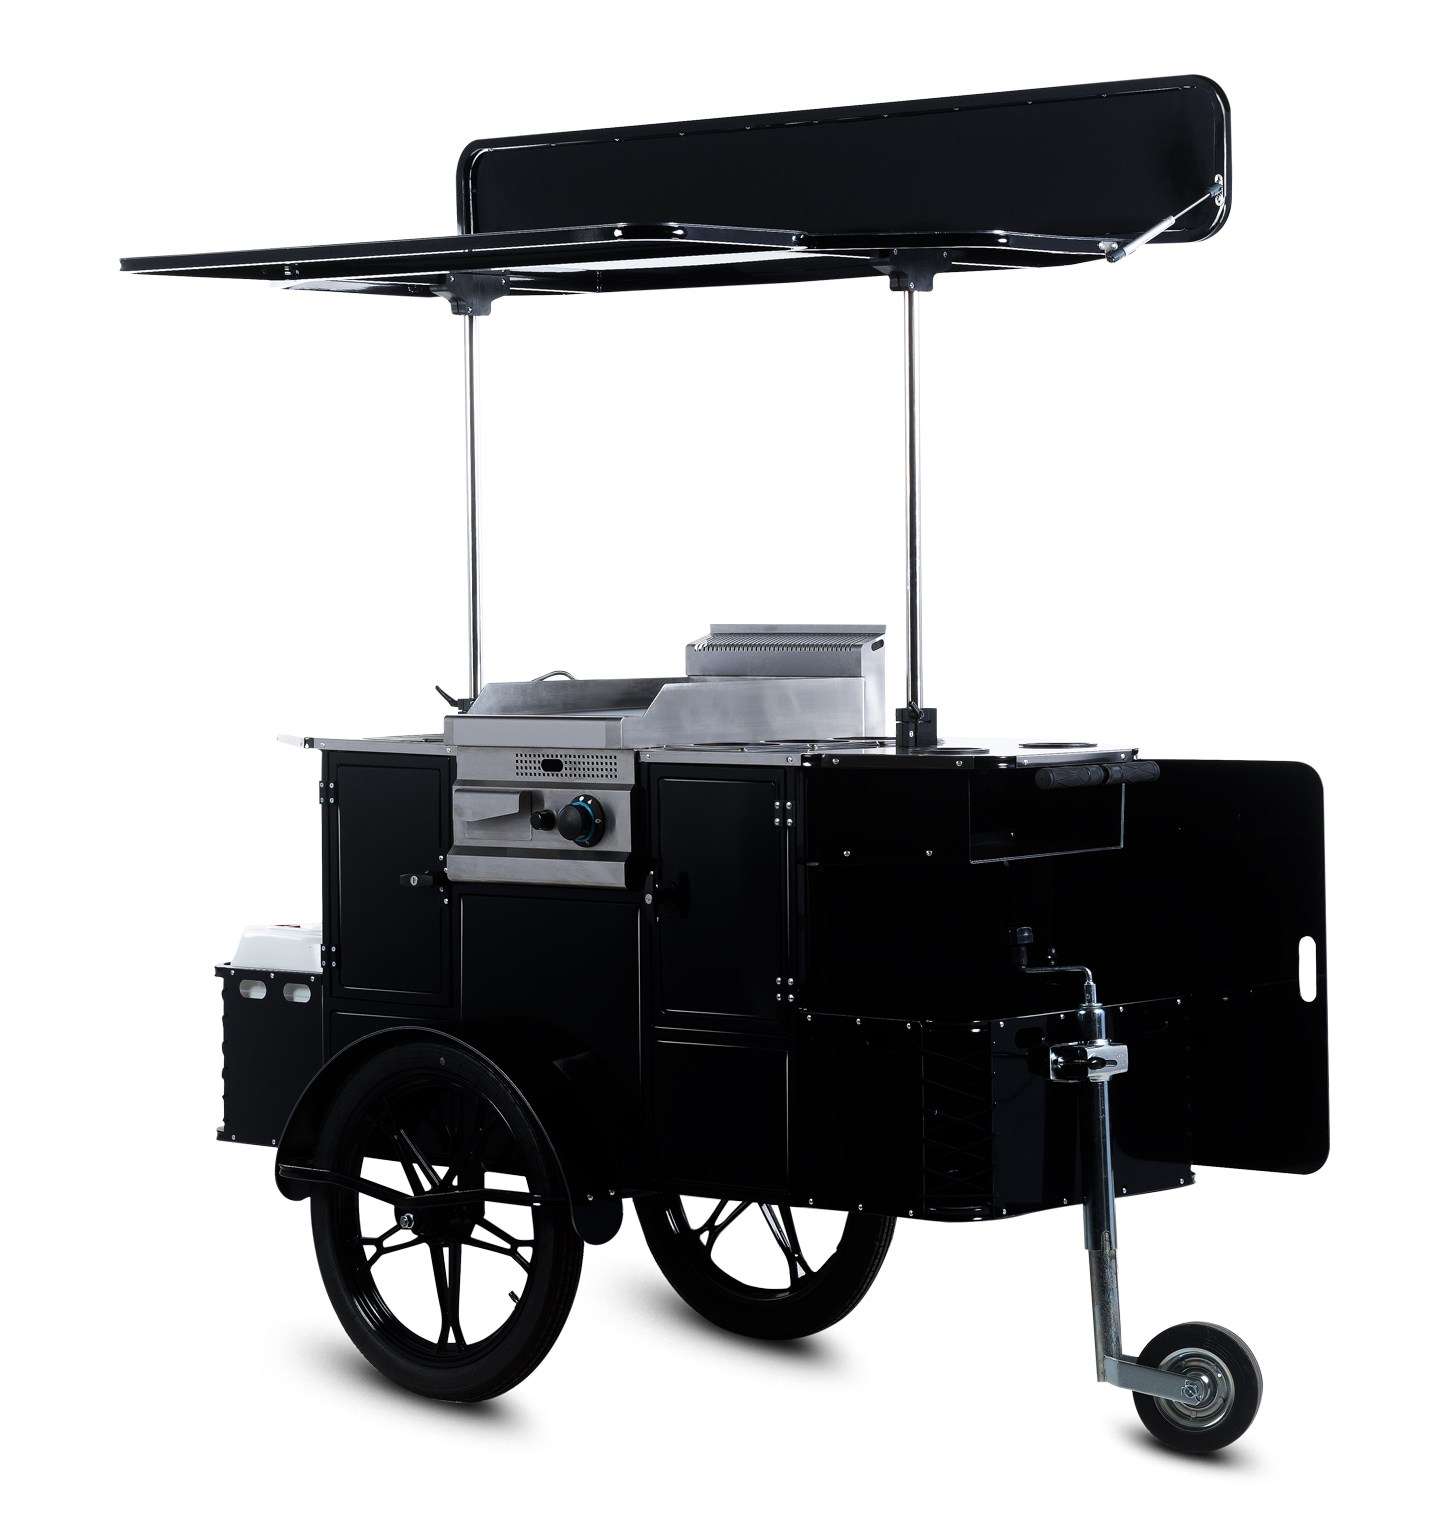 Bizz On Wheels BBQ and grill cart side view